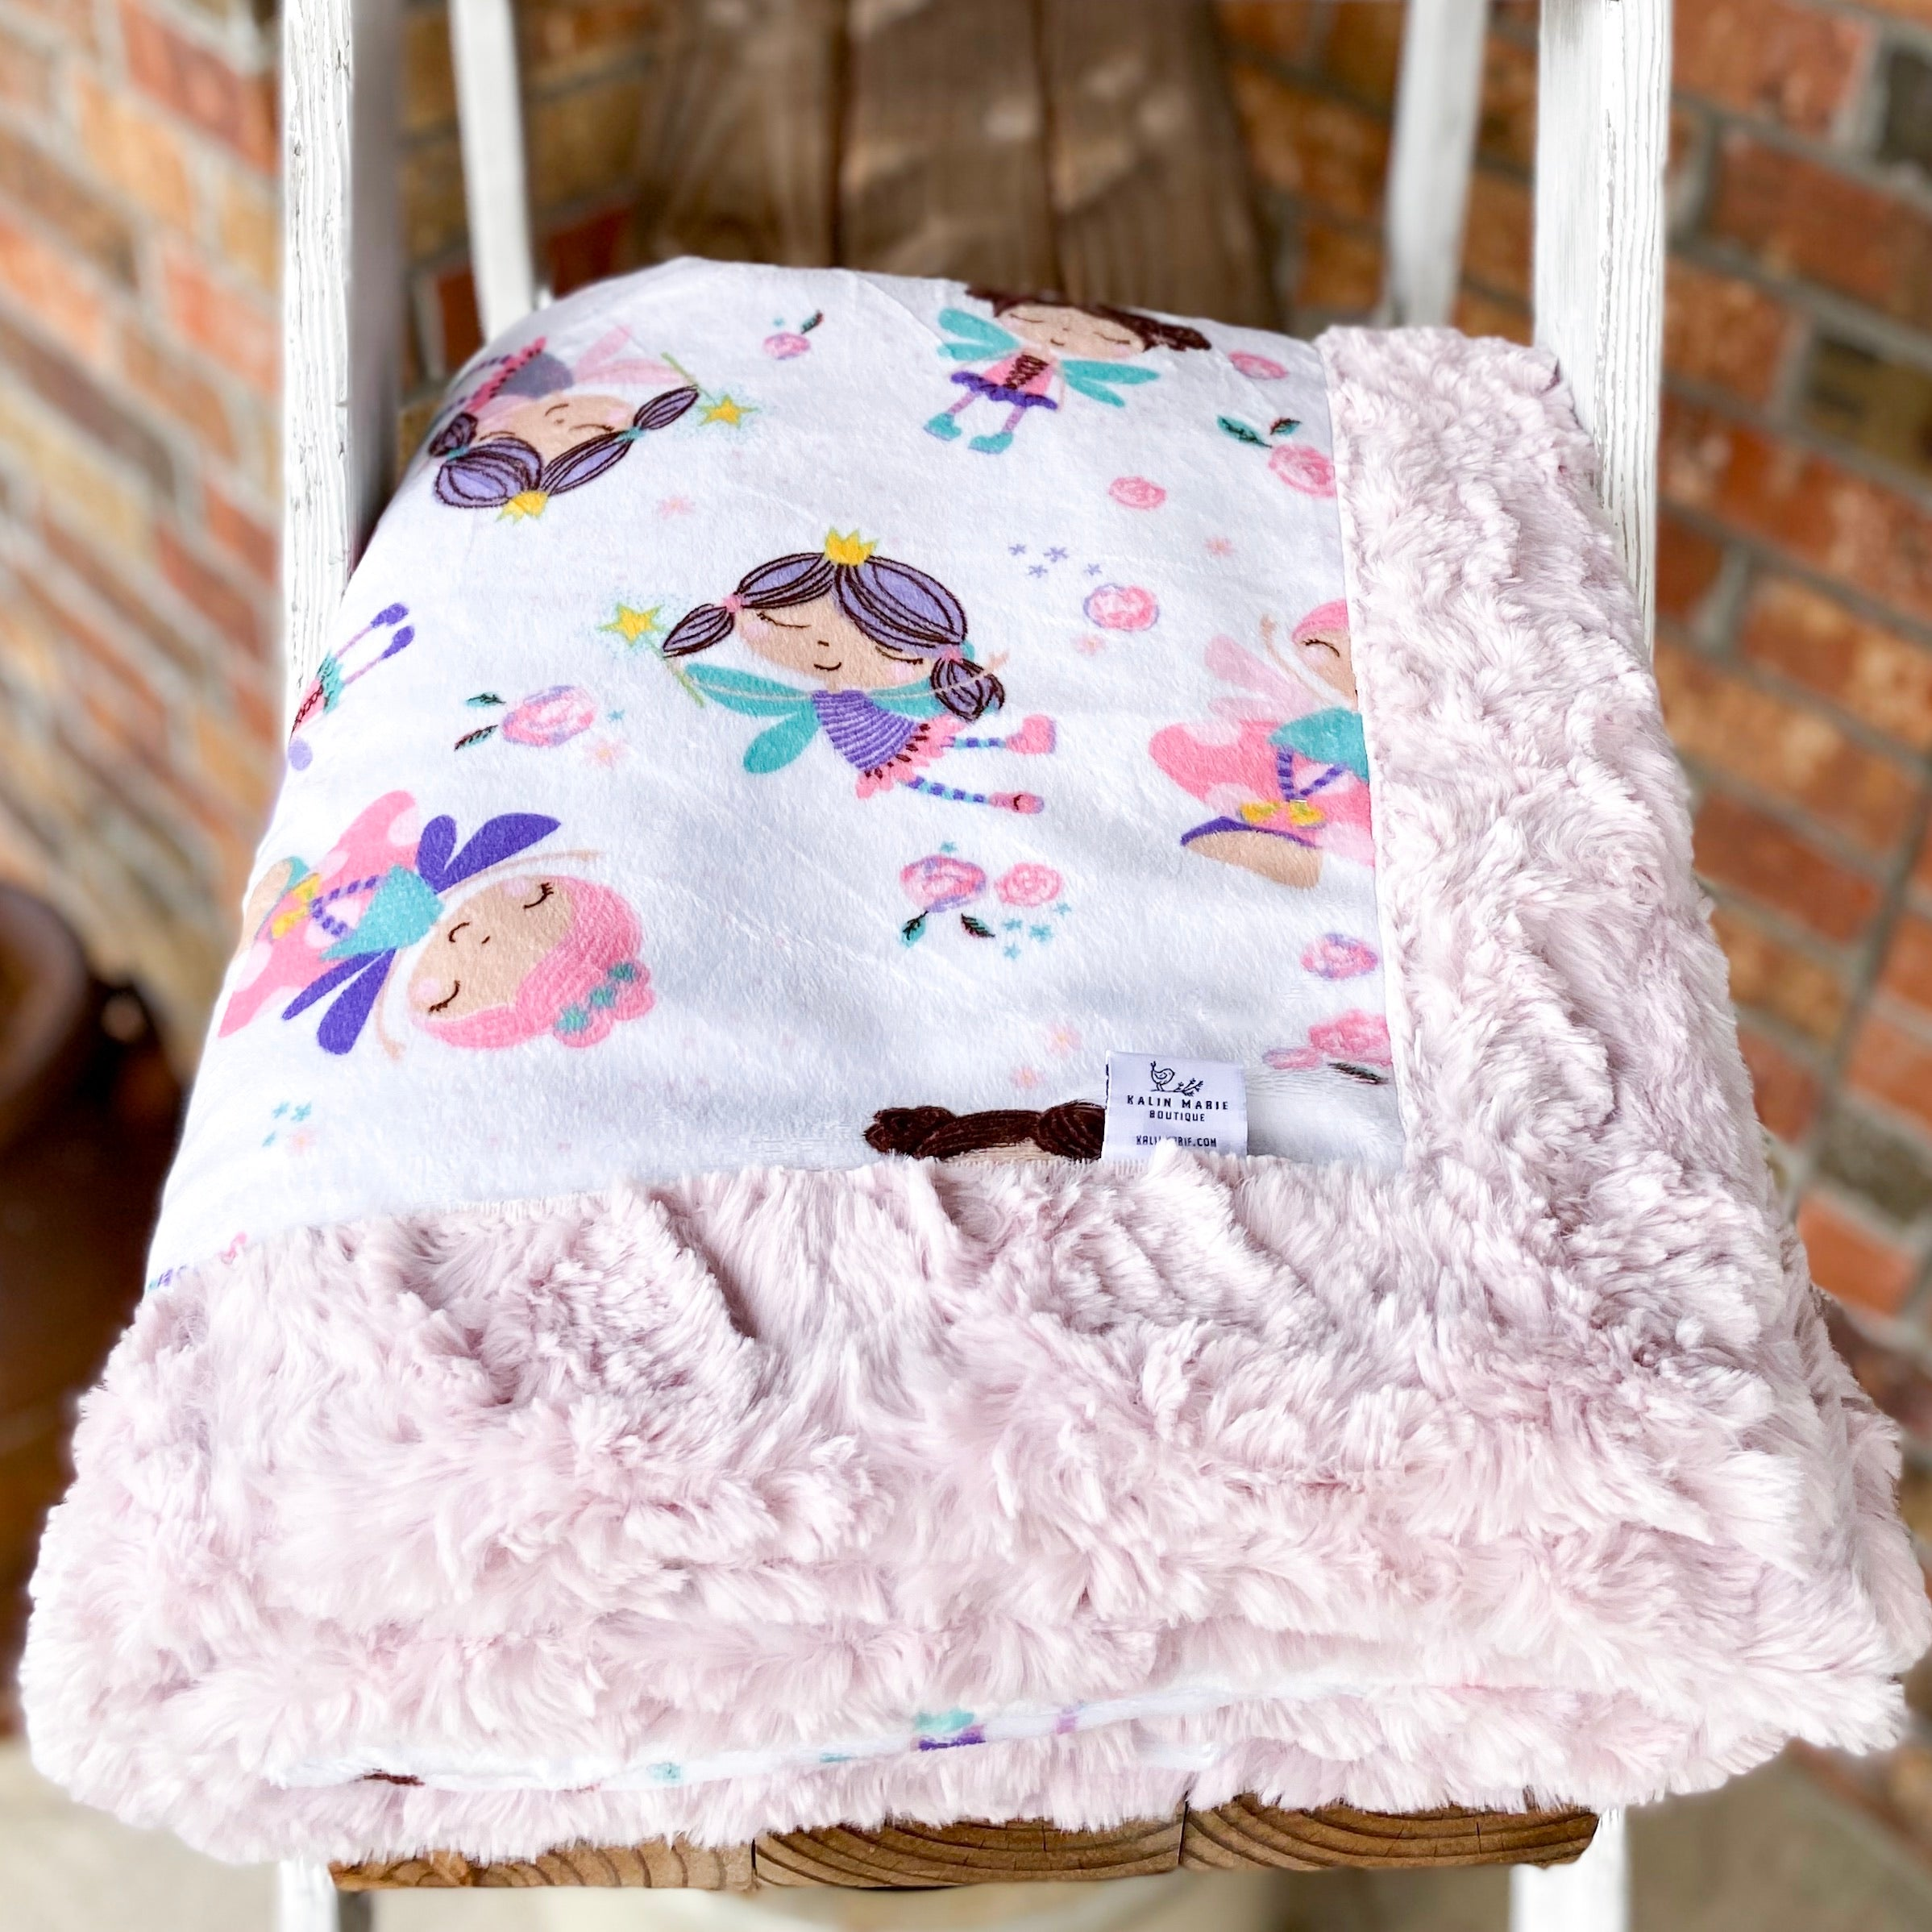 RTS Twinkle Toes & Ice Pink Glacier Luxe Snuggle Blankets